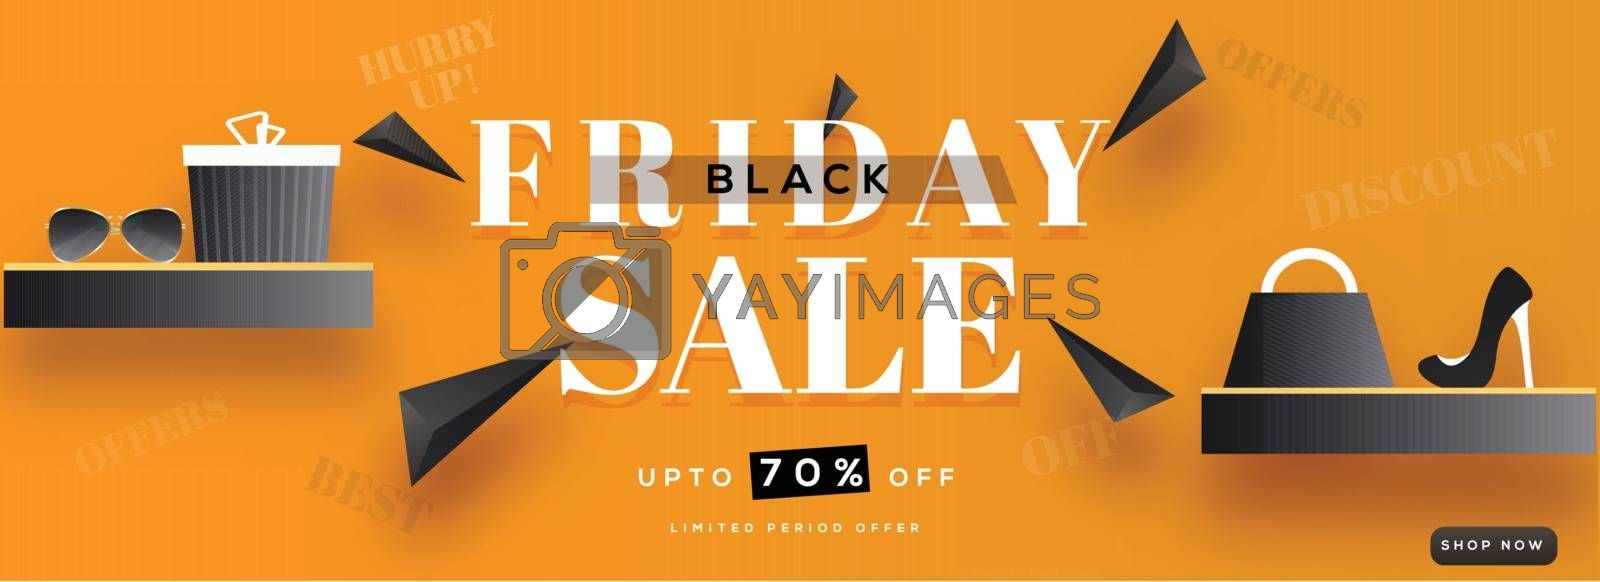 70% Discount offer for Black Friday Sale with shopping elements on orange background. Advertising banner or header design.